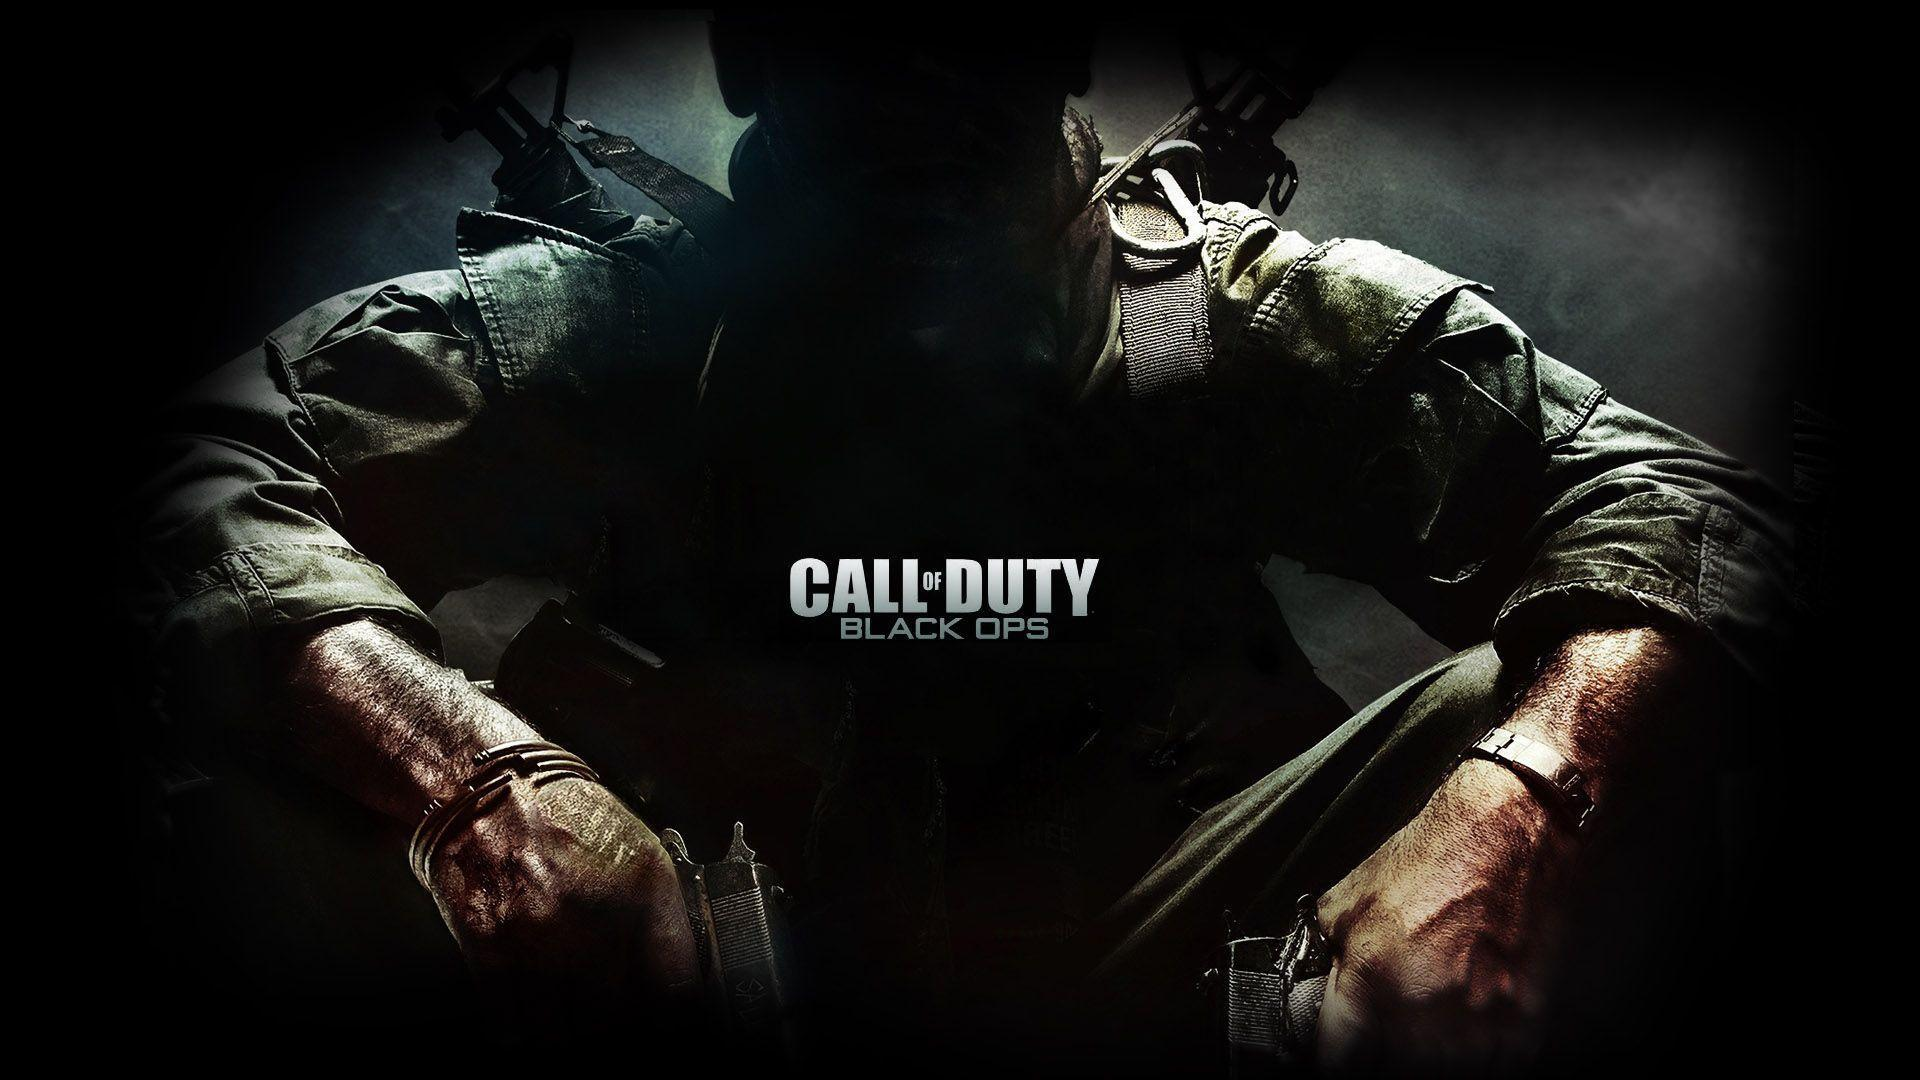 Call Of Duty Wallpapers | HD Wallpapers Early